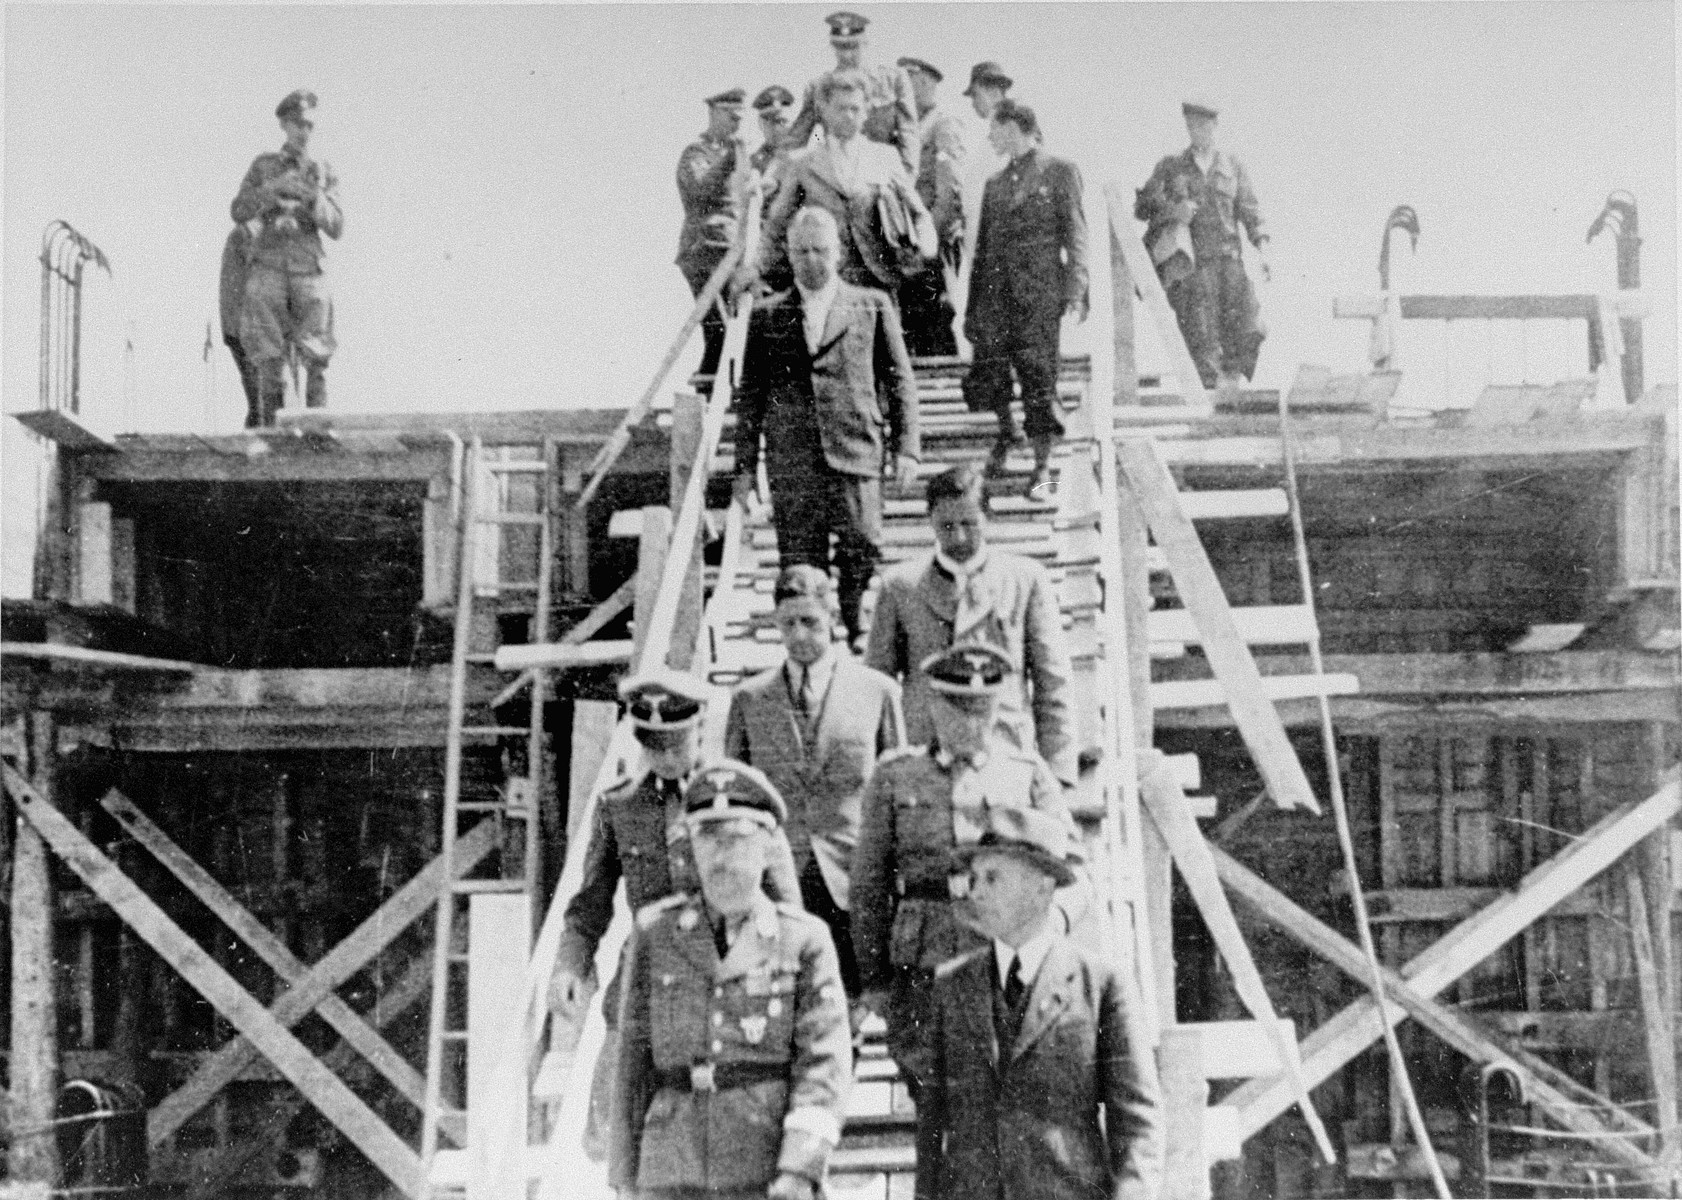 Reichsfuehrer SS Heinrich Himmler (bottom left) descends a wooden staircase during a tour of the Monowitz-Buna building site in the company of Max Faust (bottom right).   Faust, who was an IG Farben engineer, was the head of building operations at Monowitz-Buna.